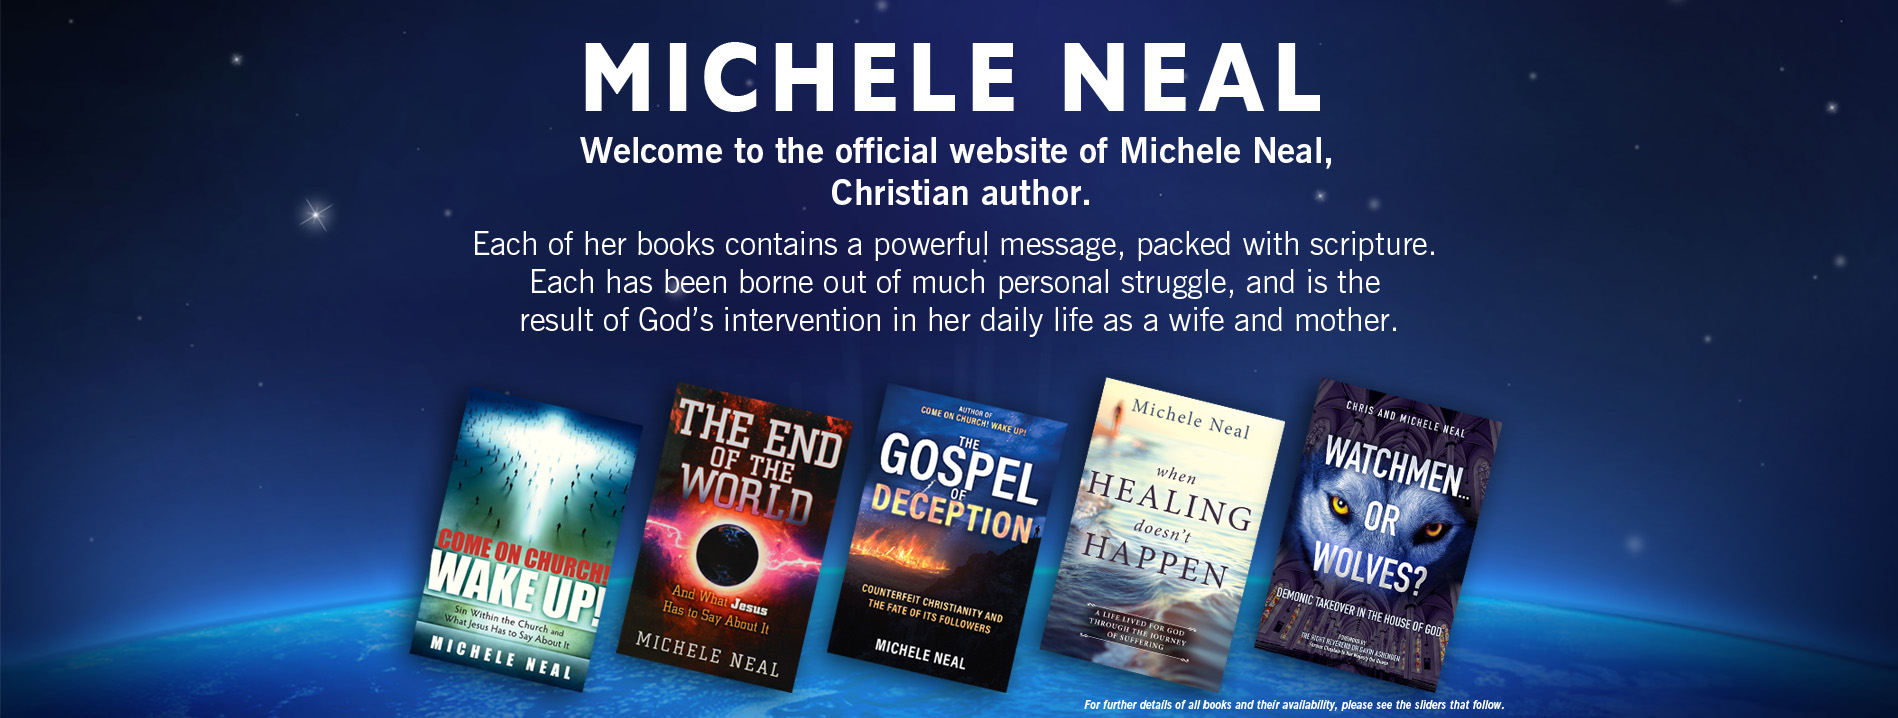 christian books by michele neal